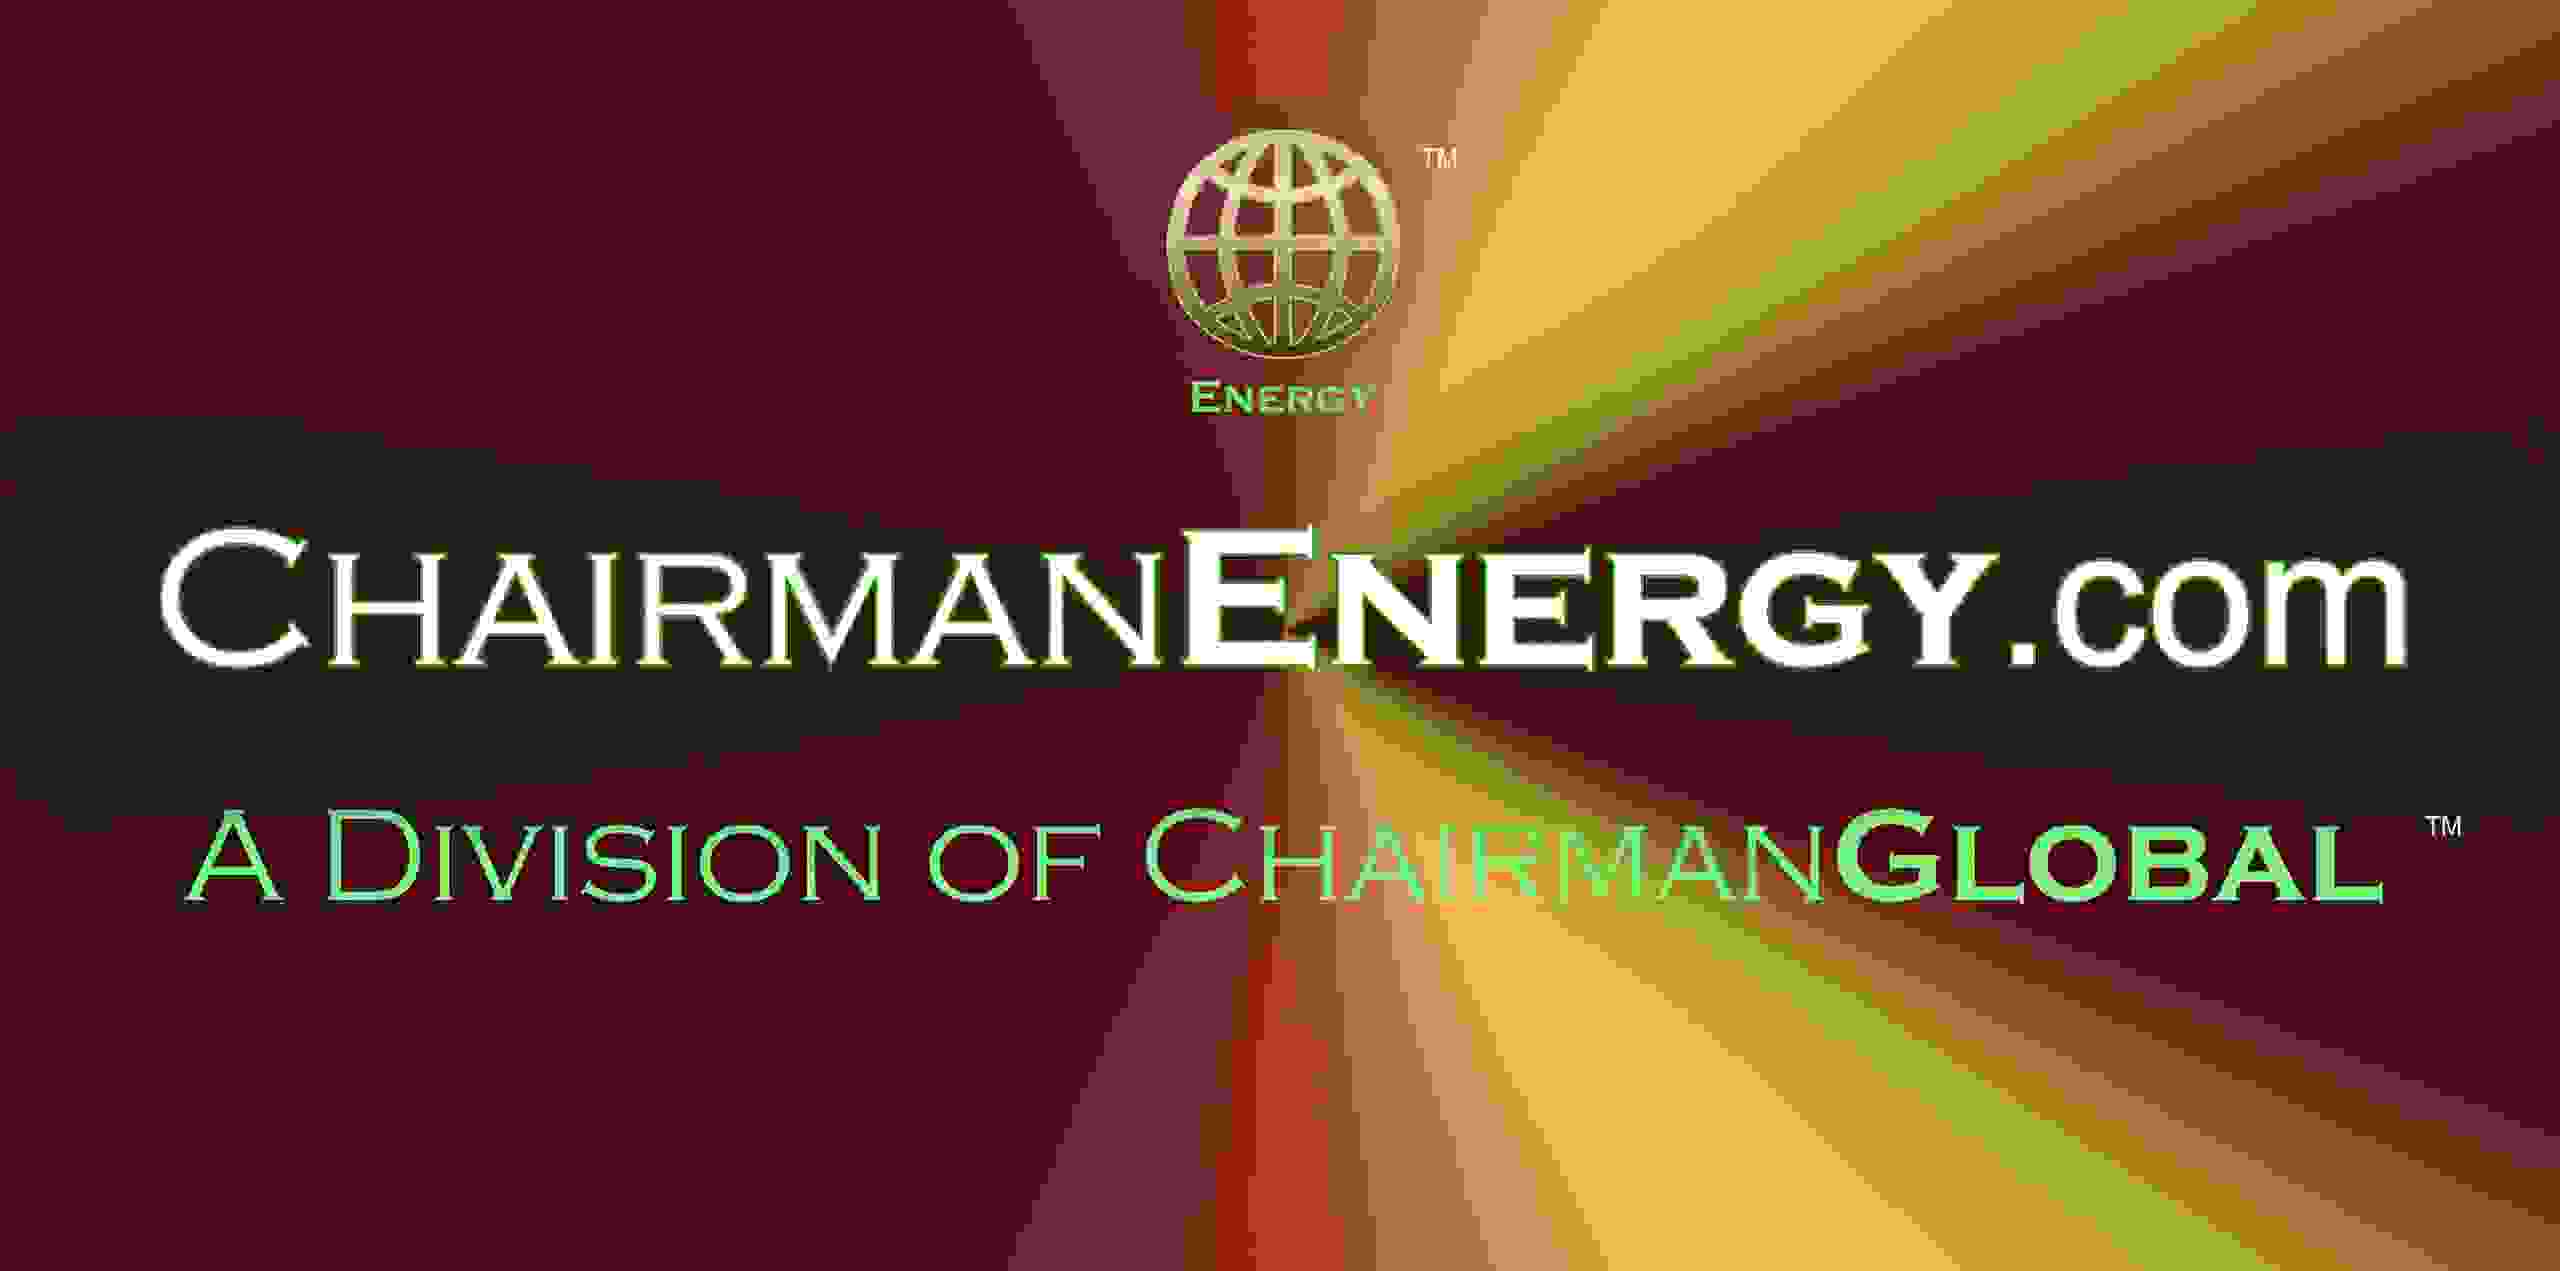 This is the artwork design for ChairmanEnergy.com. Chairman Energy is a division of ChairmanGlobal.com.